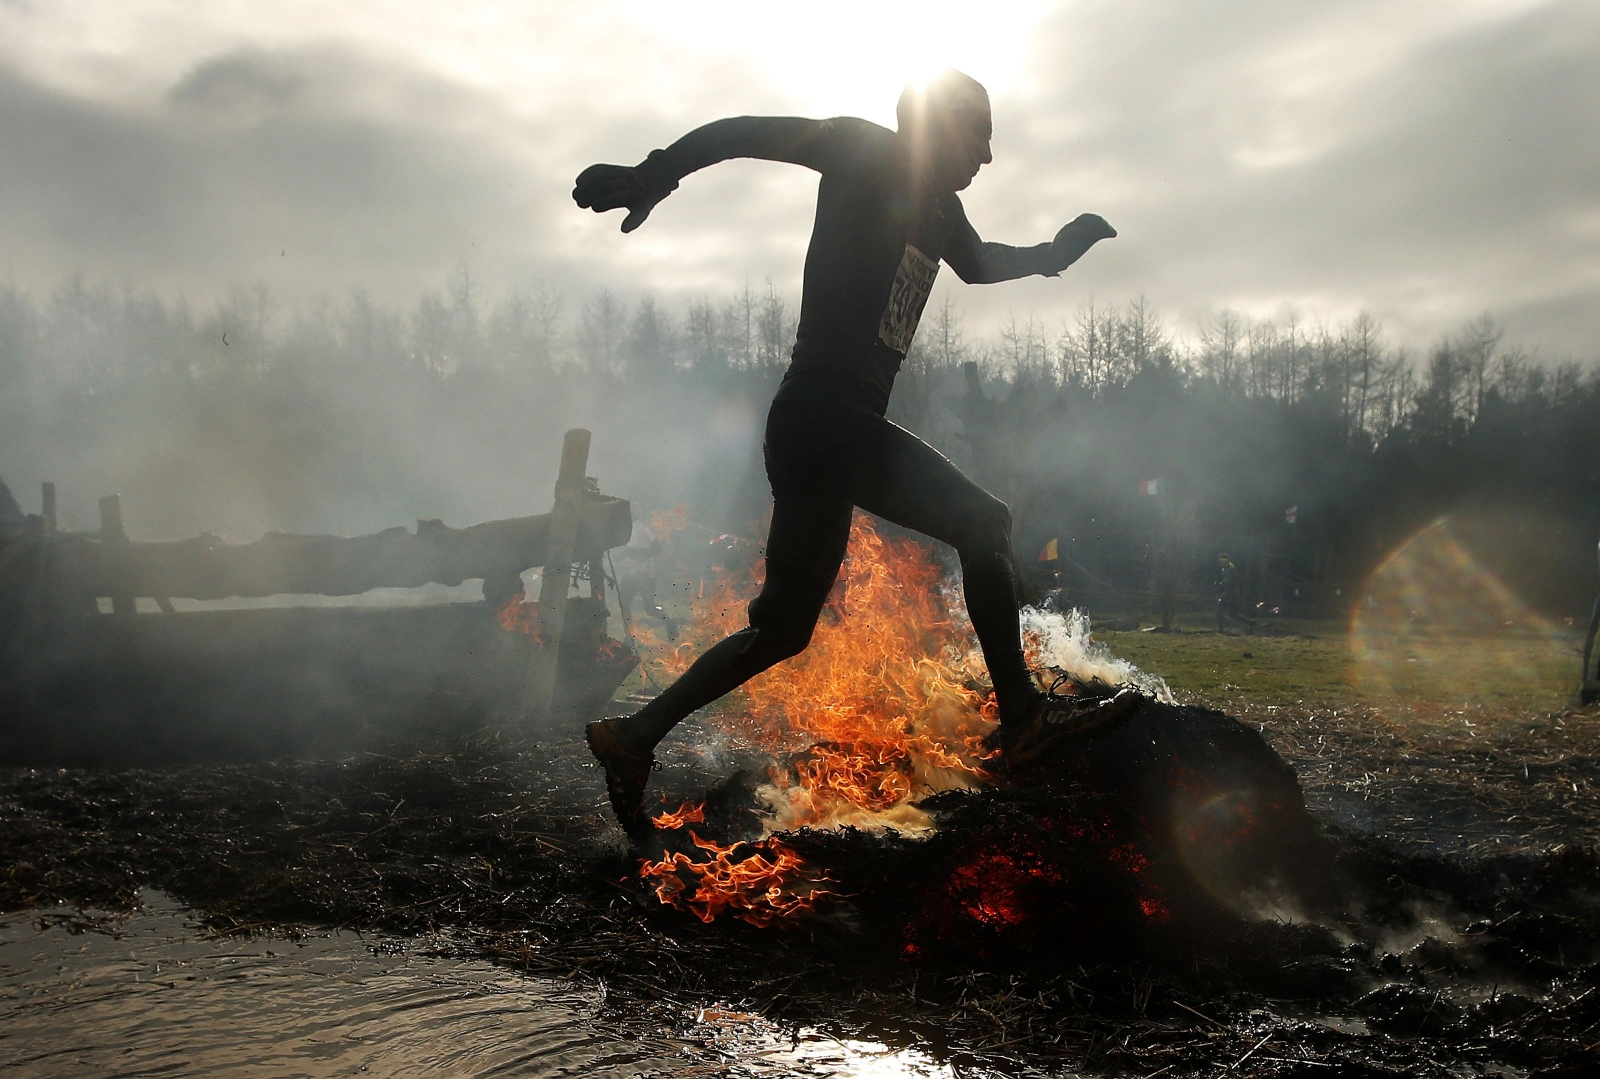 Tough Guy 2015: Electric shocks, fire and mud